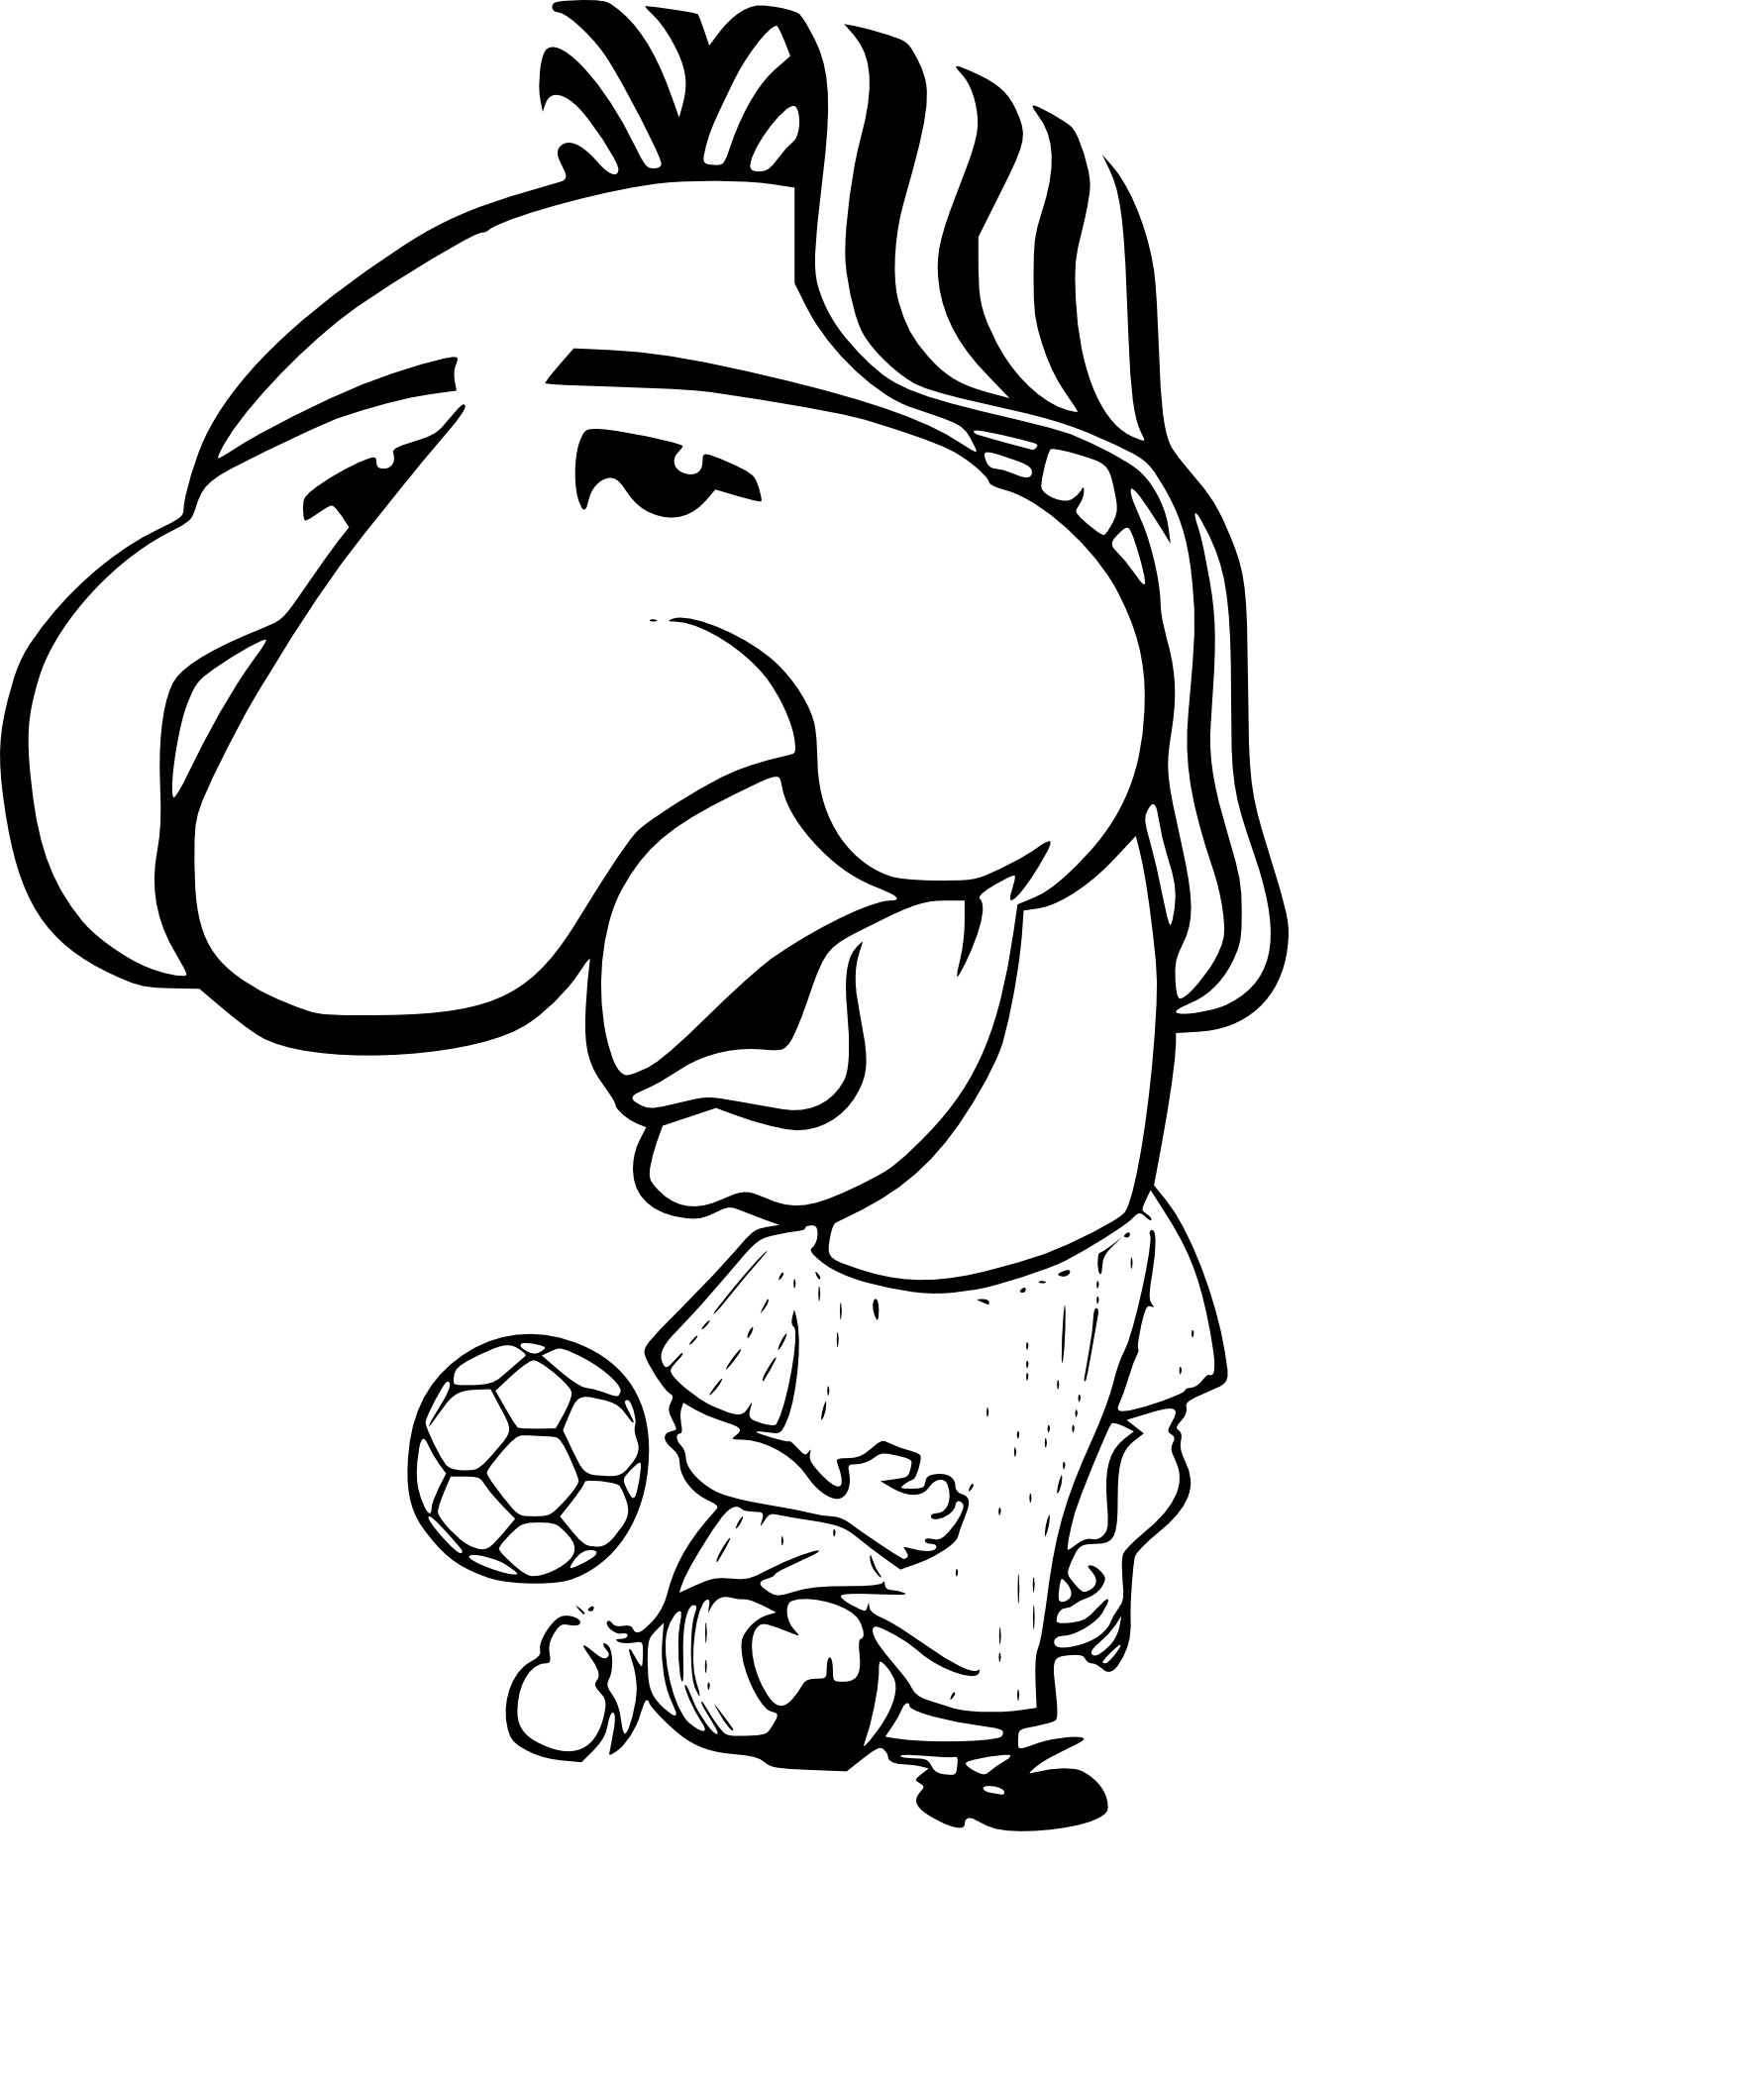 Coloriage Lionel Messi